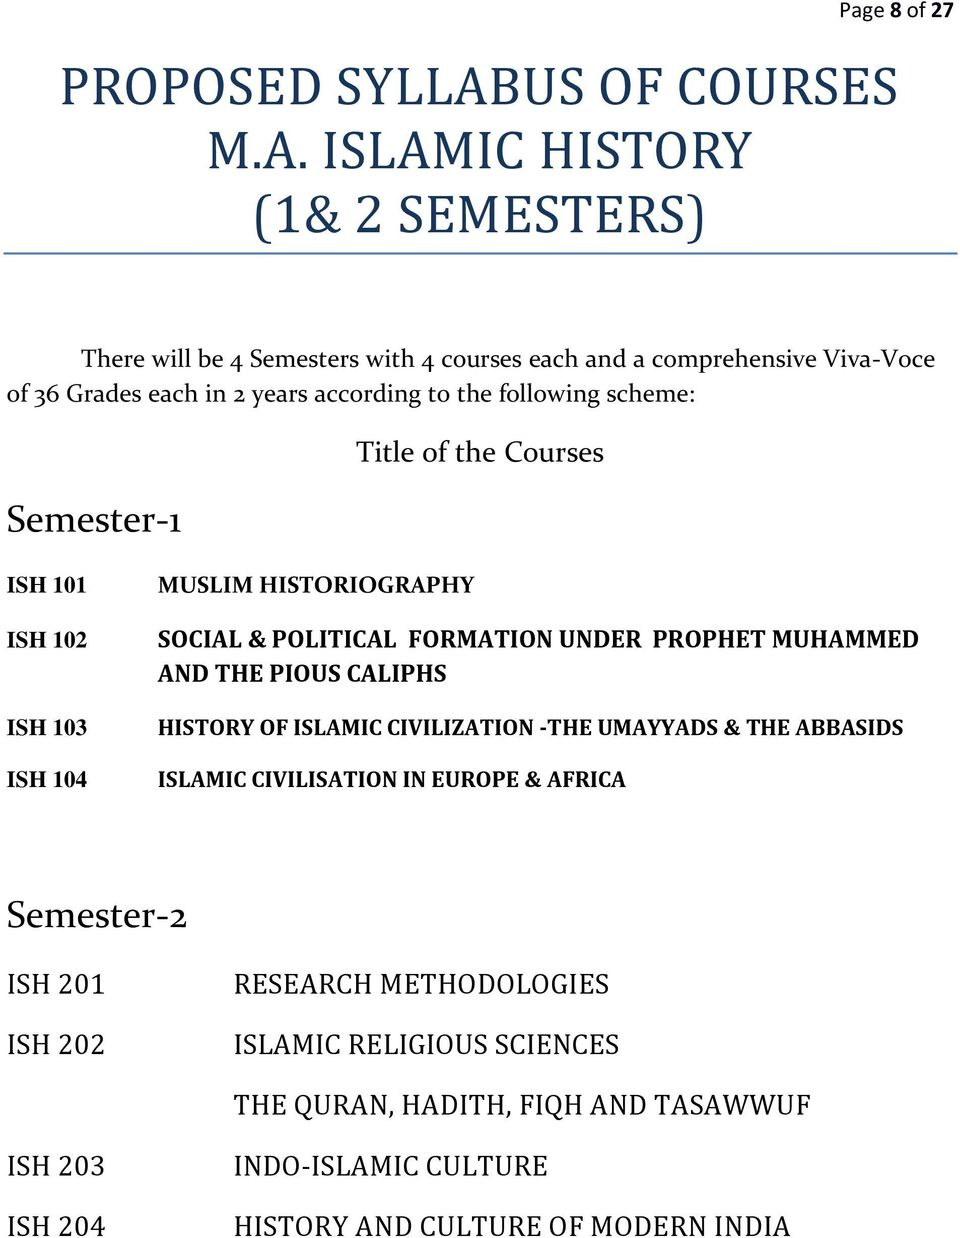 ISLAMIC HISTORY (1& 2 SEMESTERS) There will be 4 Semesters with 4 courses each and a comprehensive Viva-Voce of 36 Grades each in 2 years according to the following